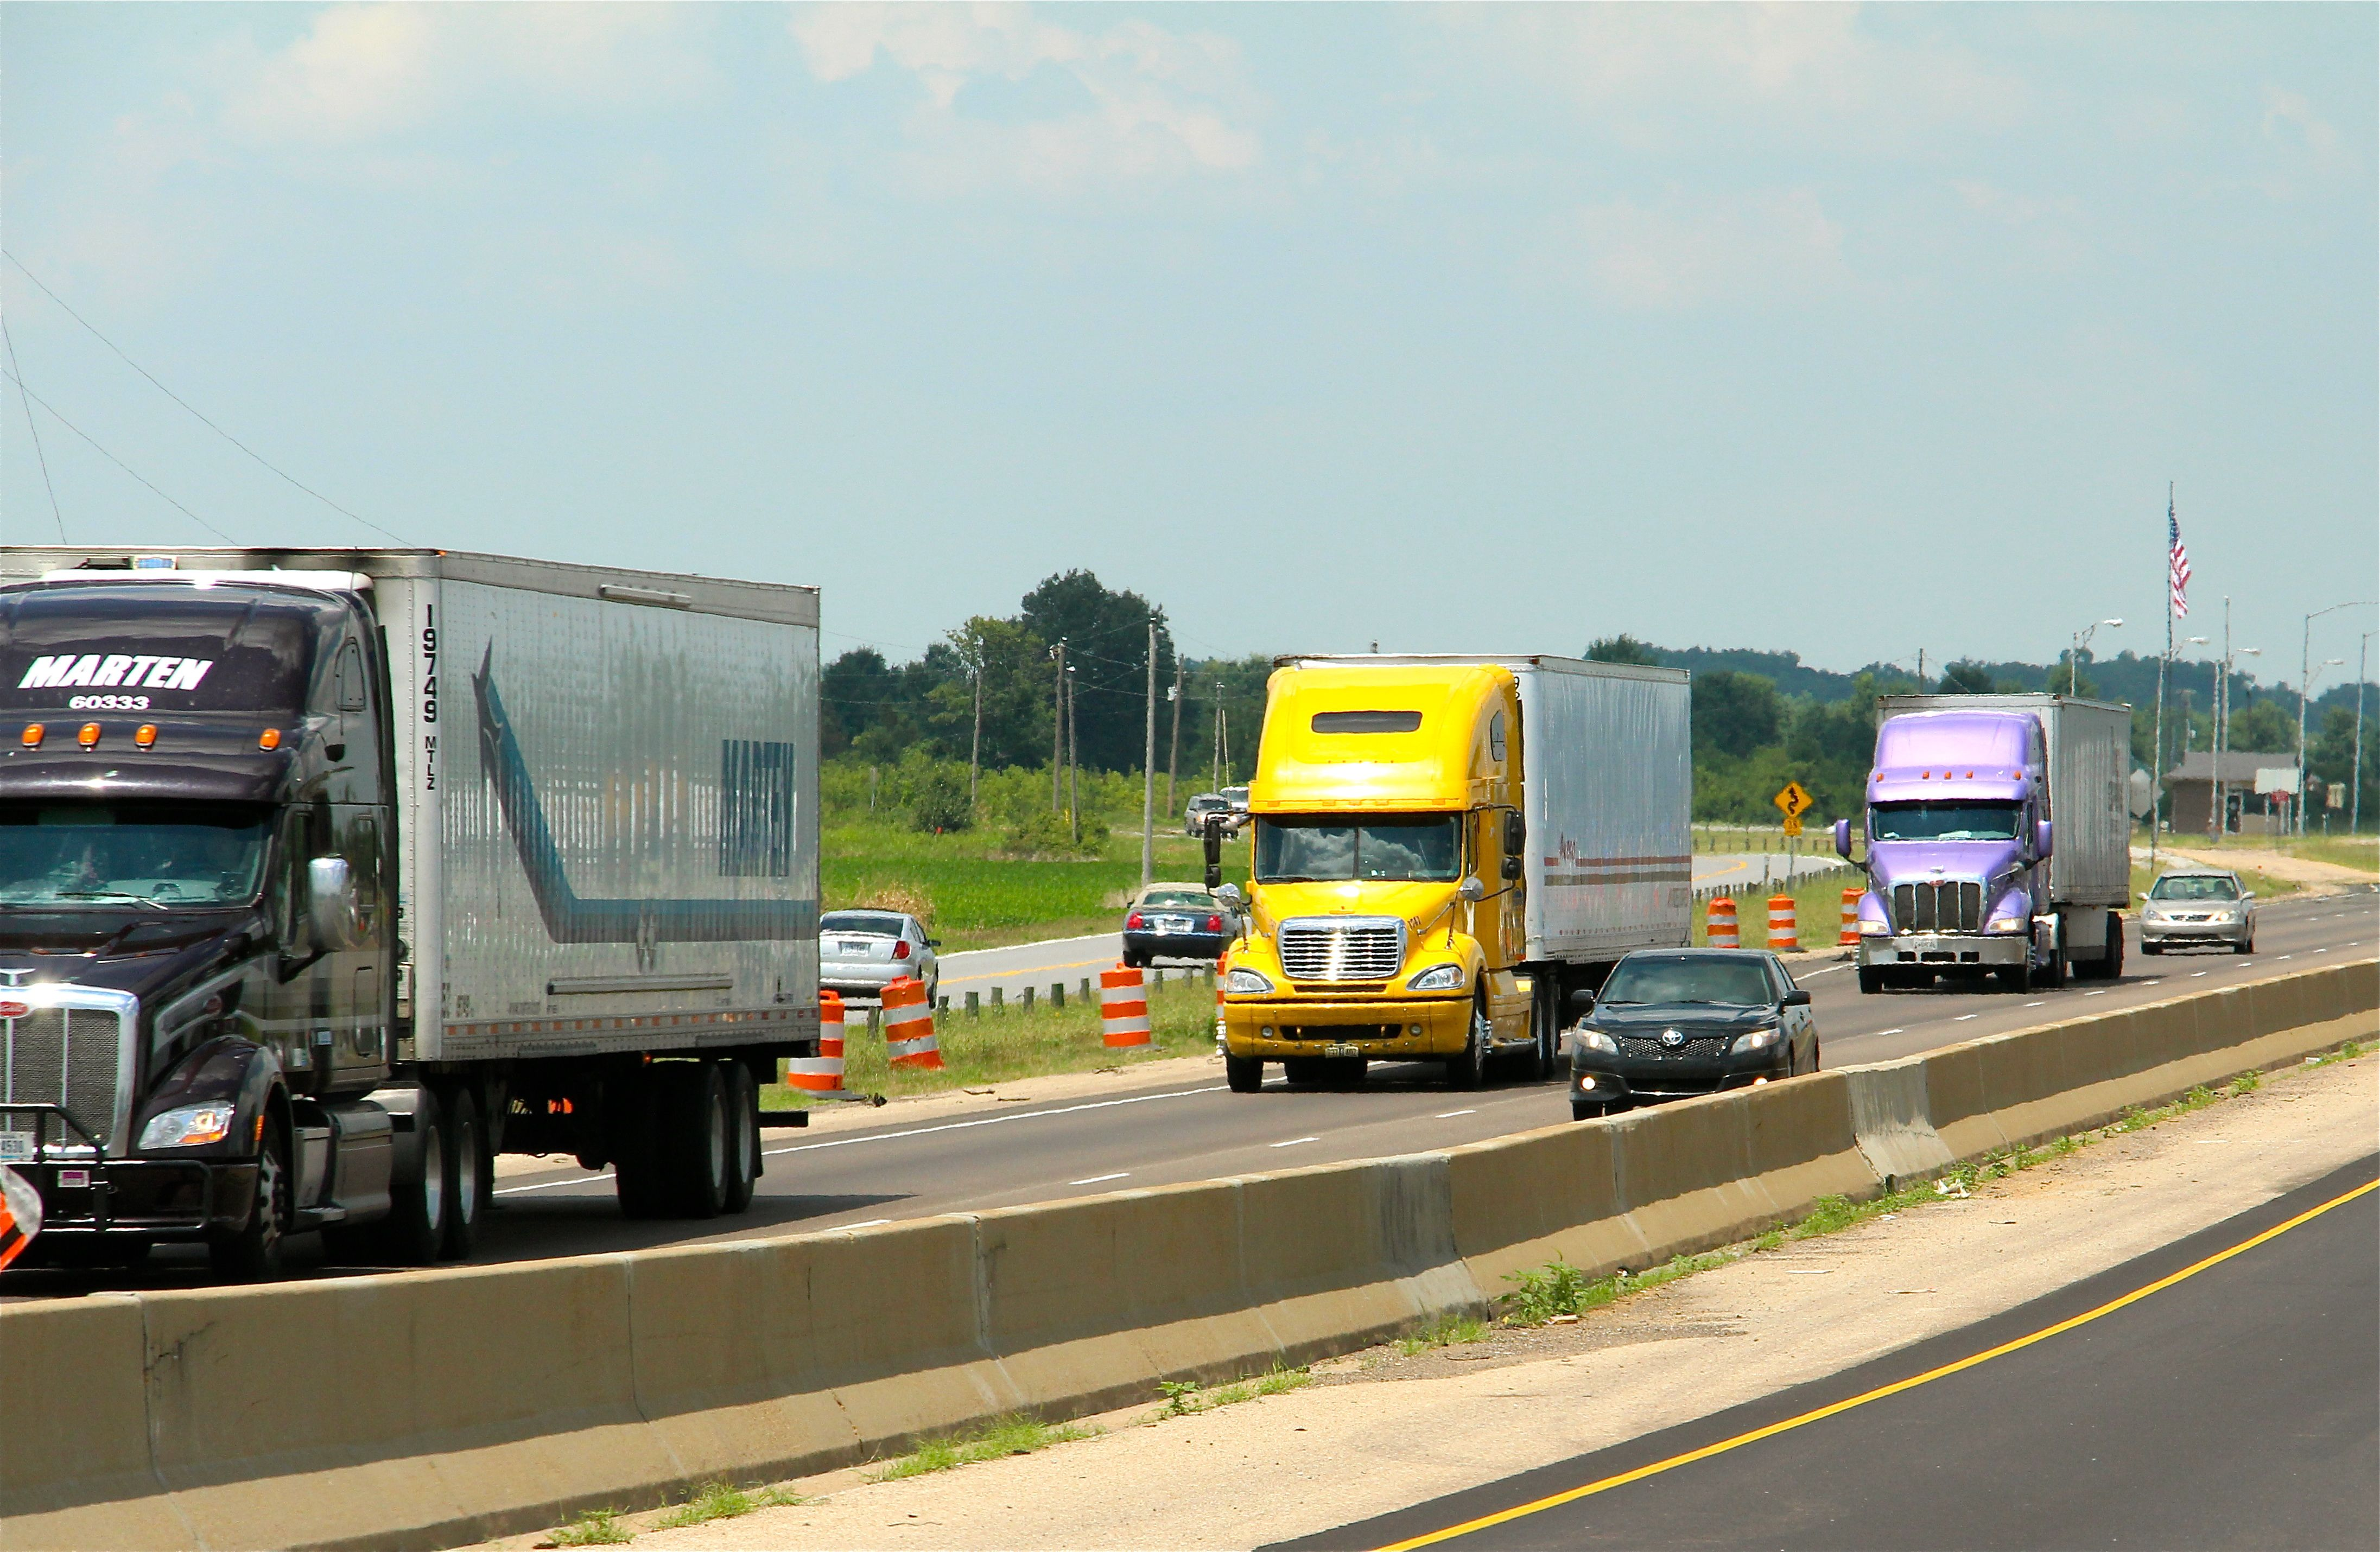 FHWA Chooses Configurations for Size and Weight Study